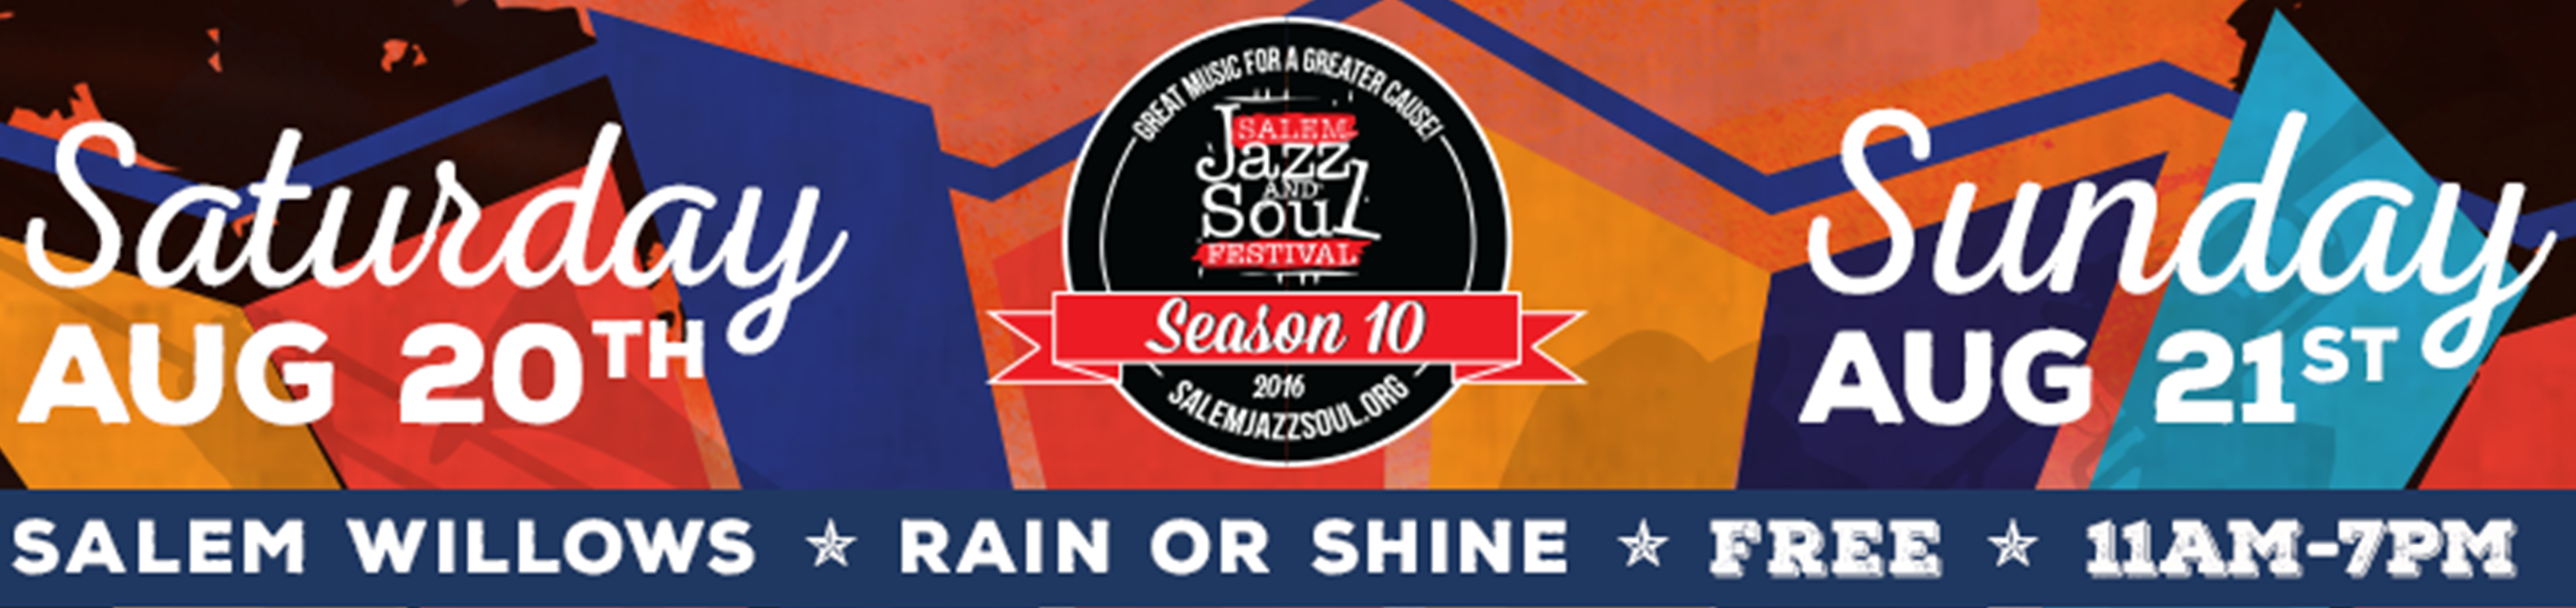 2016 Salem Jazz and Soul Festival Main Event 8/20 & 8/21